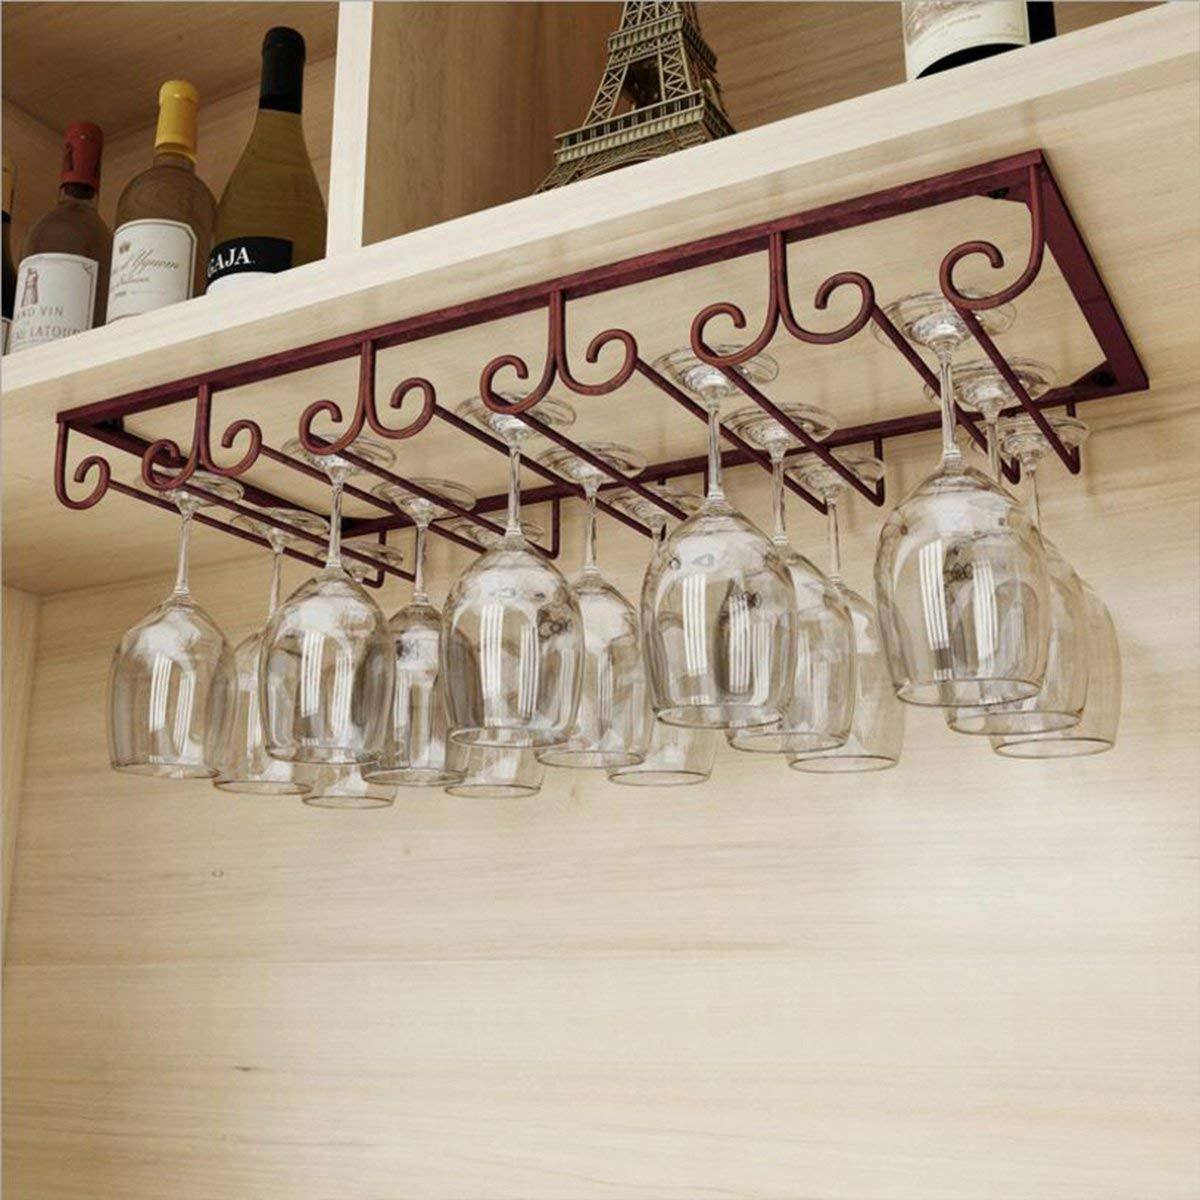 Under Cabinet Wine Hanging Shelves 5 Slots,Vintage Wine Glass Rack,Organizer Storage Cup,Goblet Drying Shelf,Stemware Holder for Home Bar,Holds up to 10-15 Glasses(Bronze) - MZGH ISLAND by MZGH ISLAND